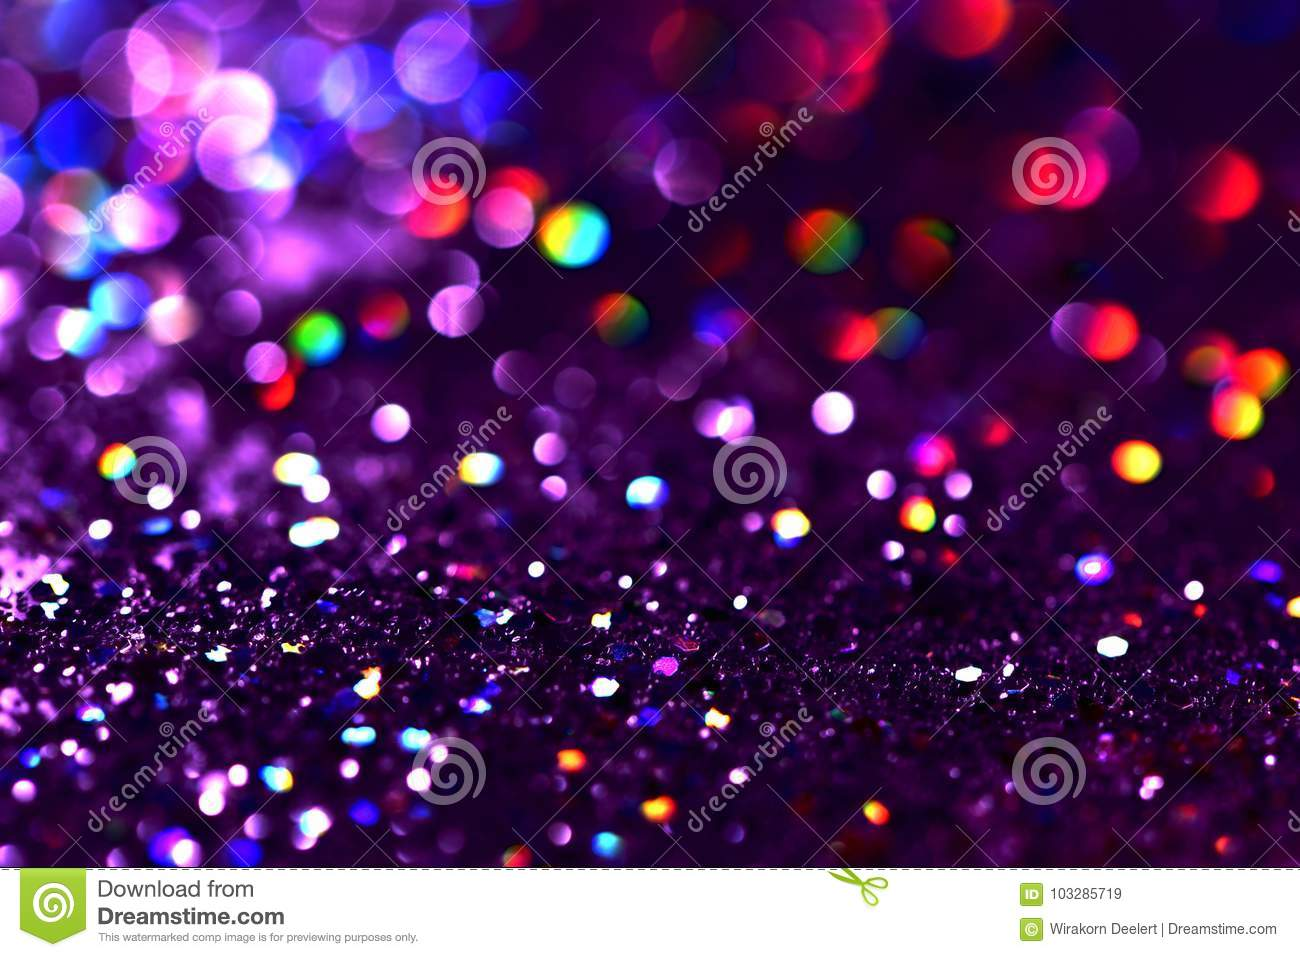 Download Bokeh Colorfull Blurred Abstract Background For Birthday, Anniversary, Wedding, New Year Eve Or Christmas Stock Image - Image of bokeh, background: 103285719